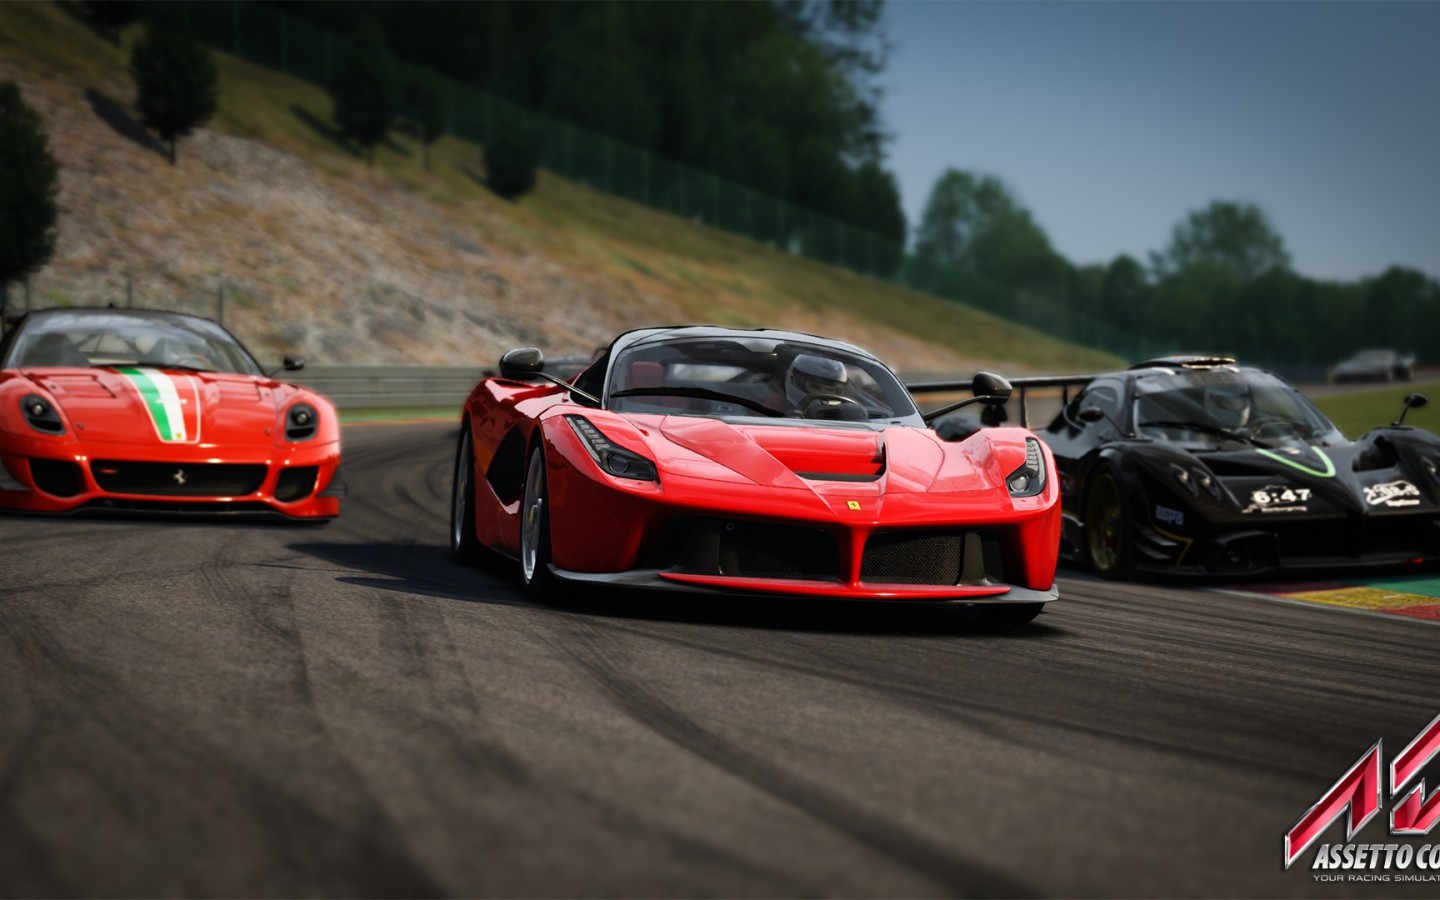 Assetto Corsa 1.0 is out now!